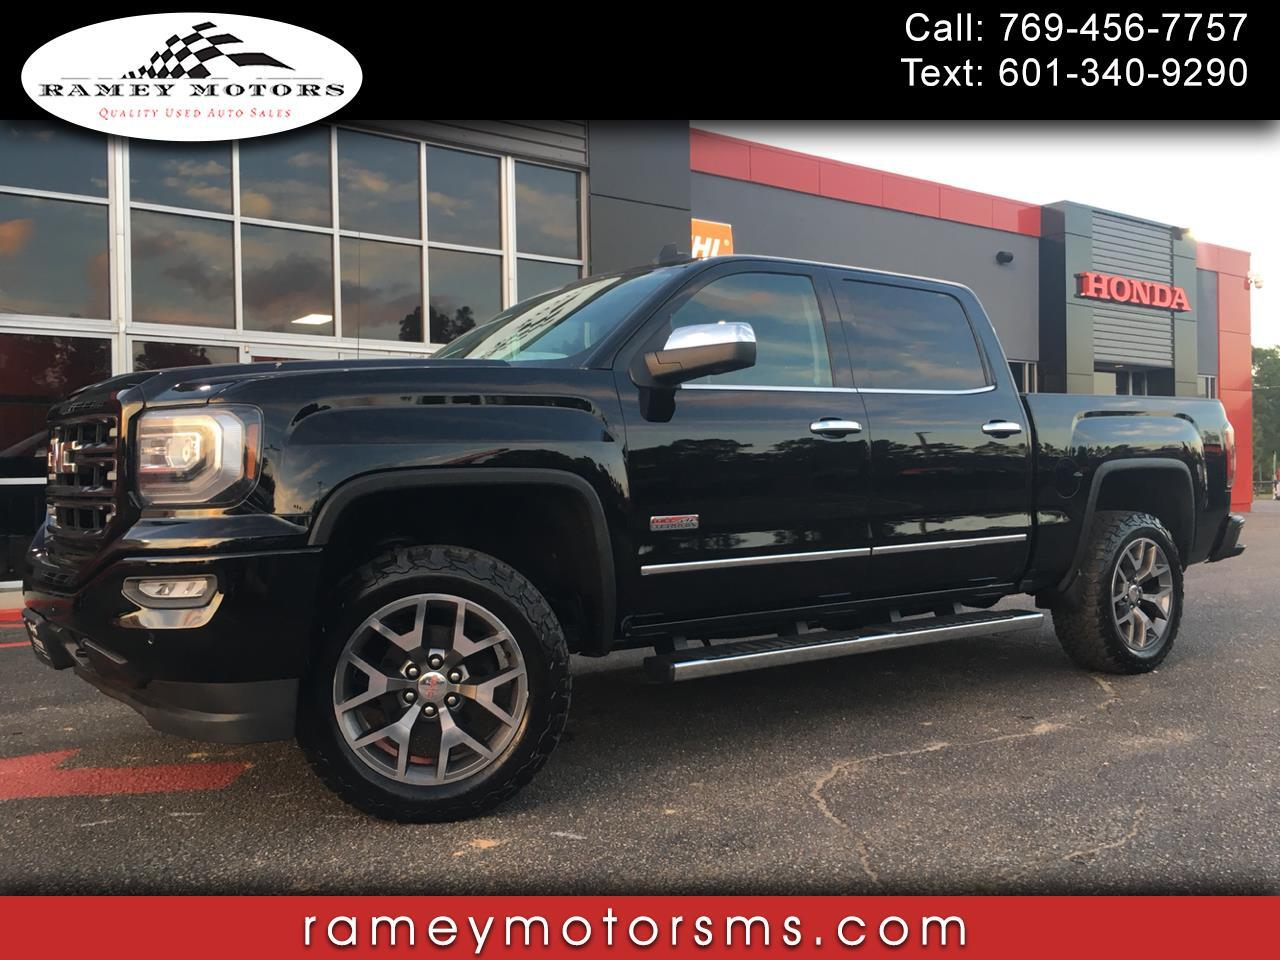 2016 GMC Sierra 1500 4WD CREW CAB ALL TERRAIN EDITION